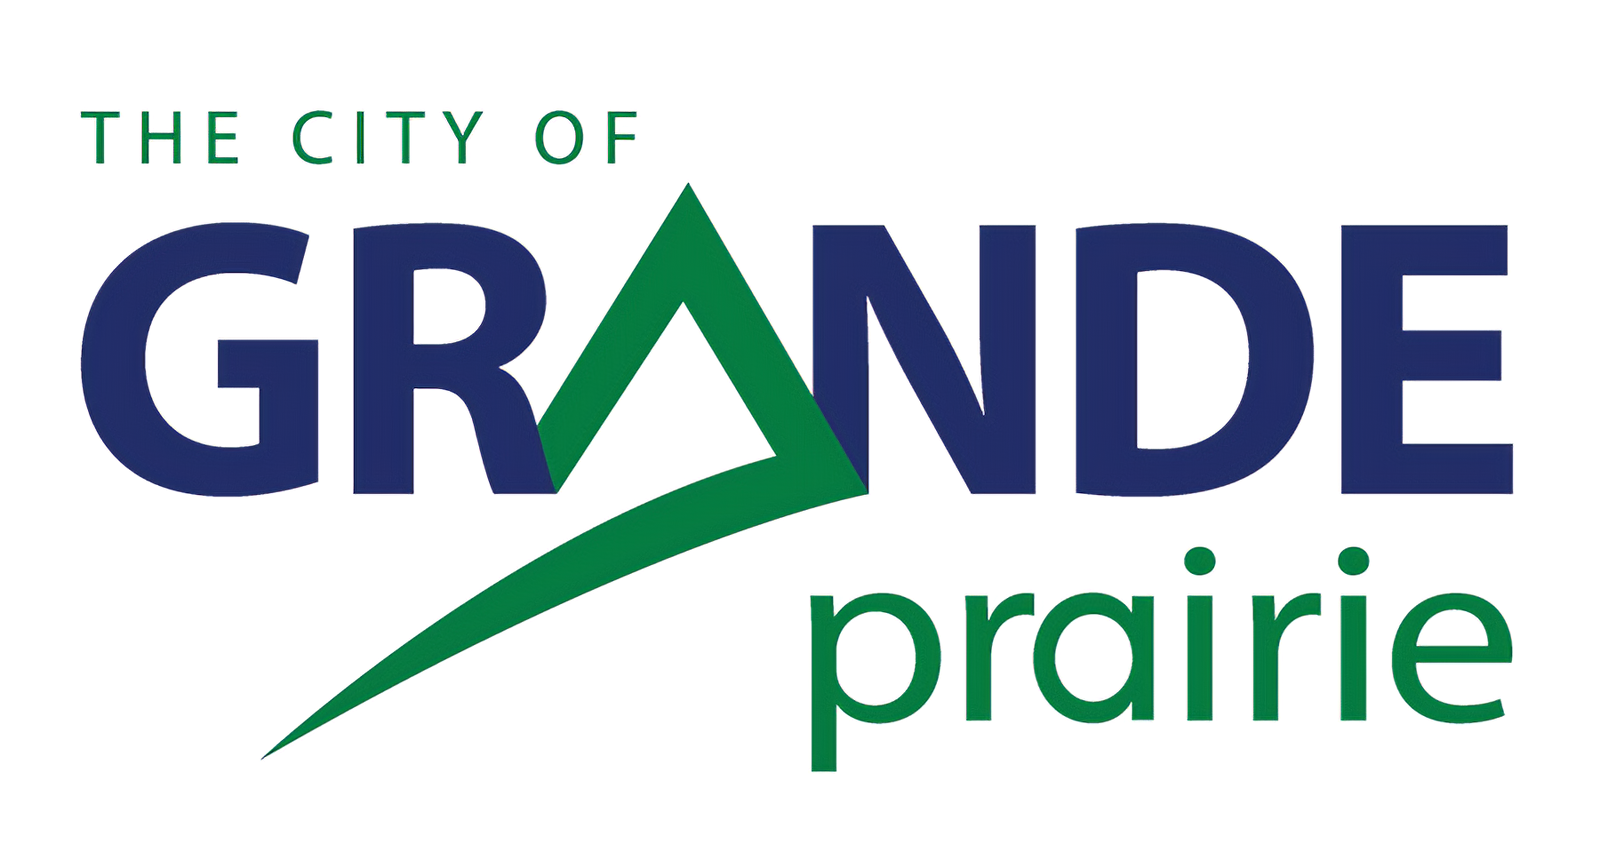 City of Grande Prairie